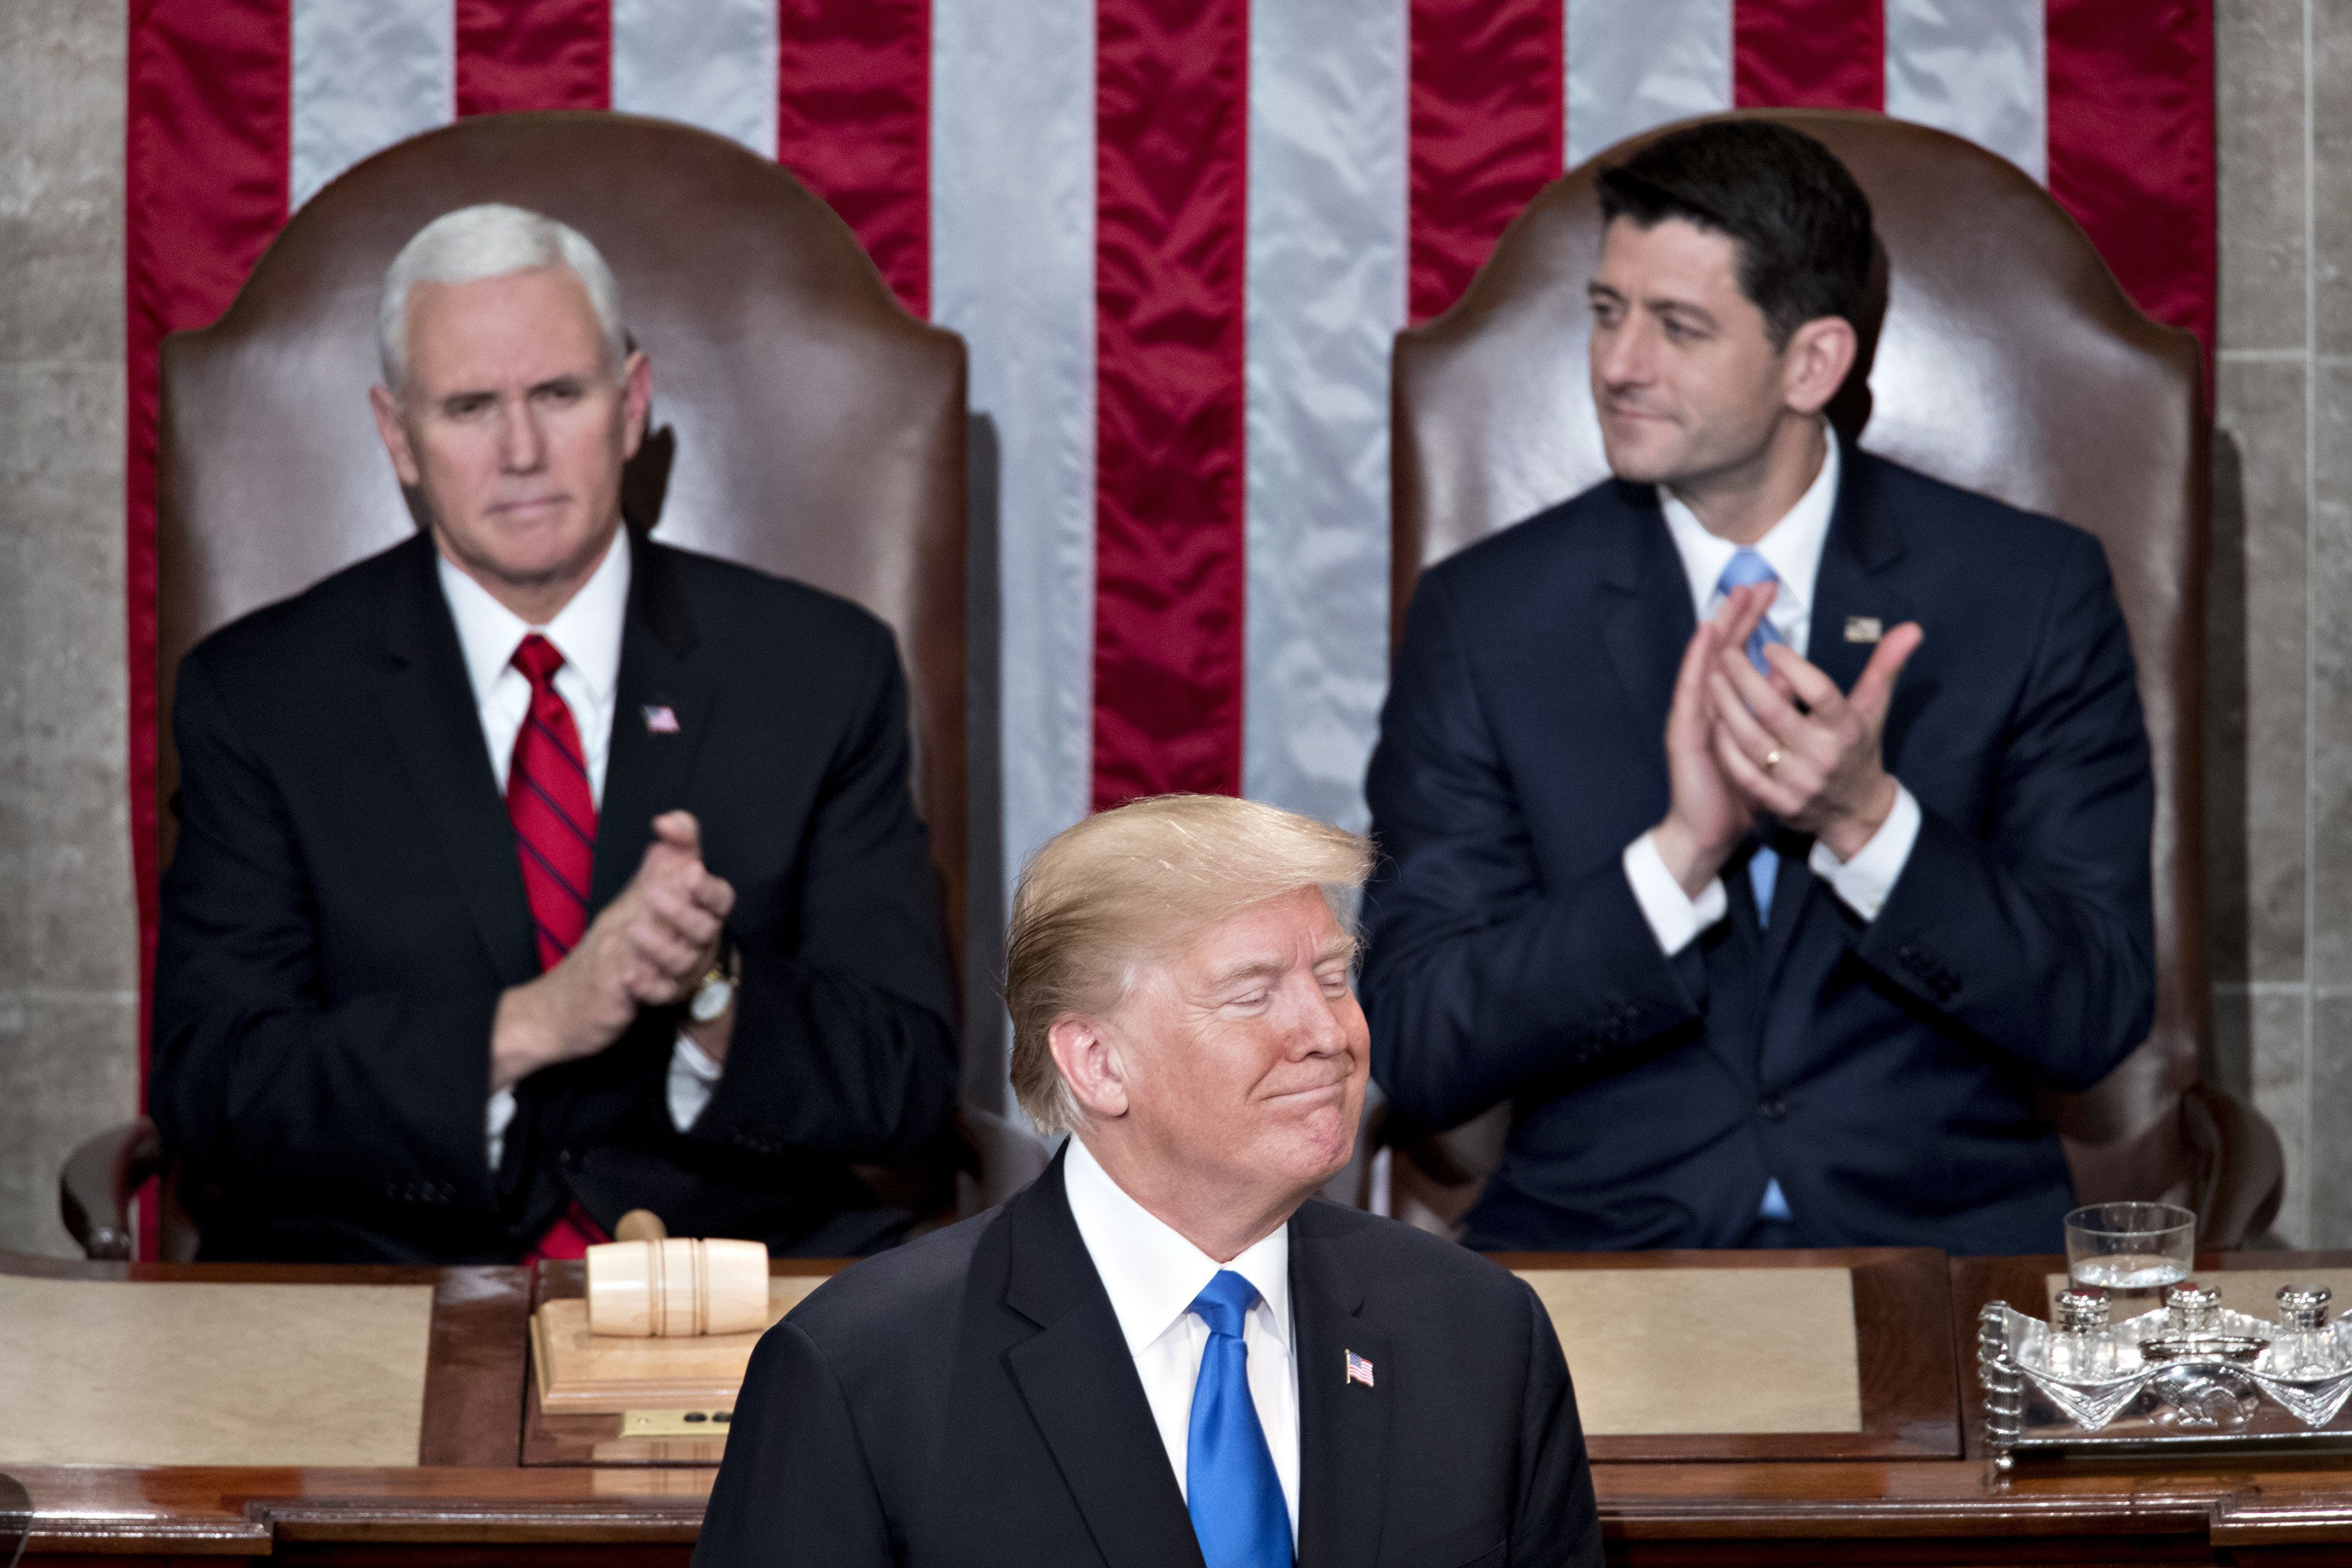 Trump Delivers His First State Of The Union Address